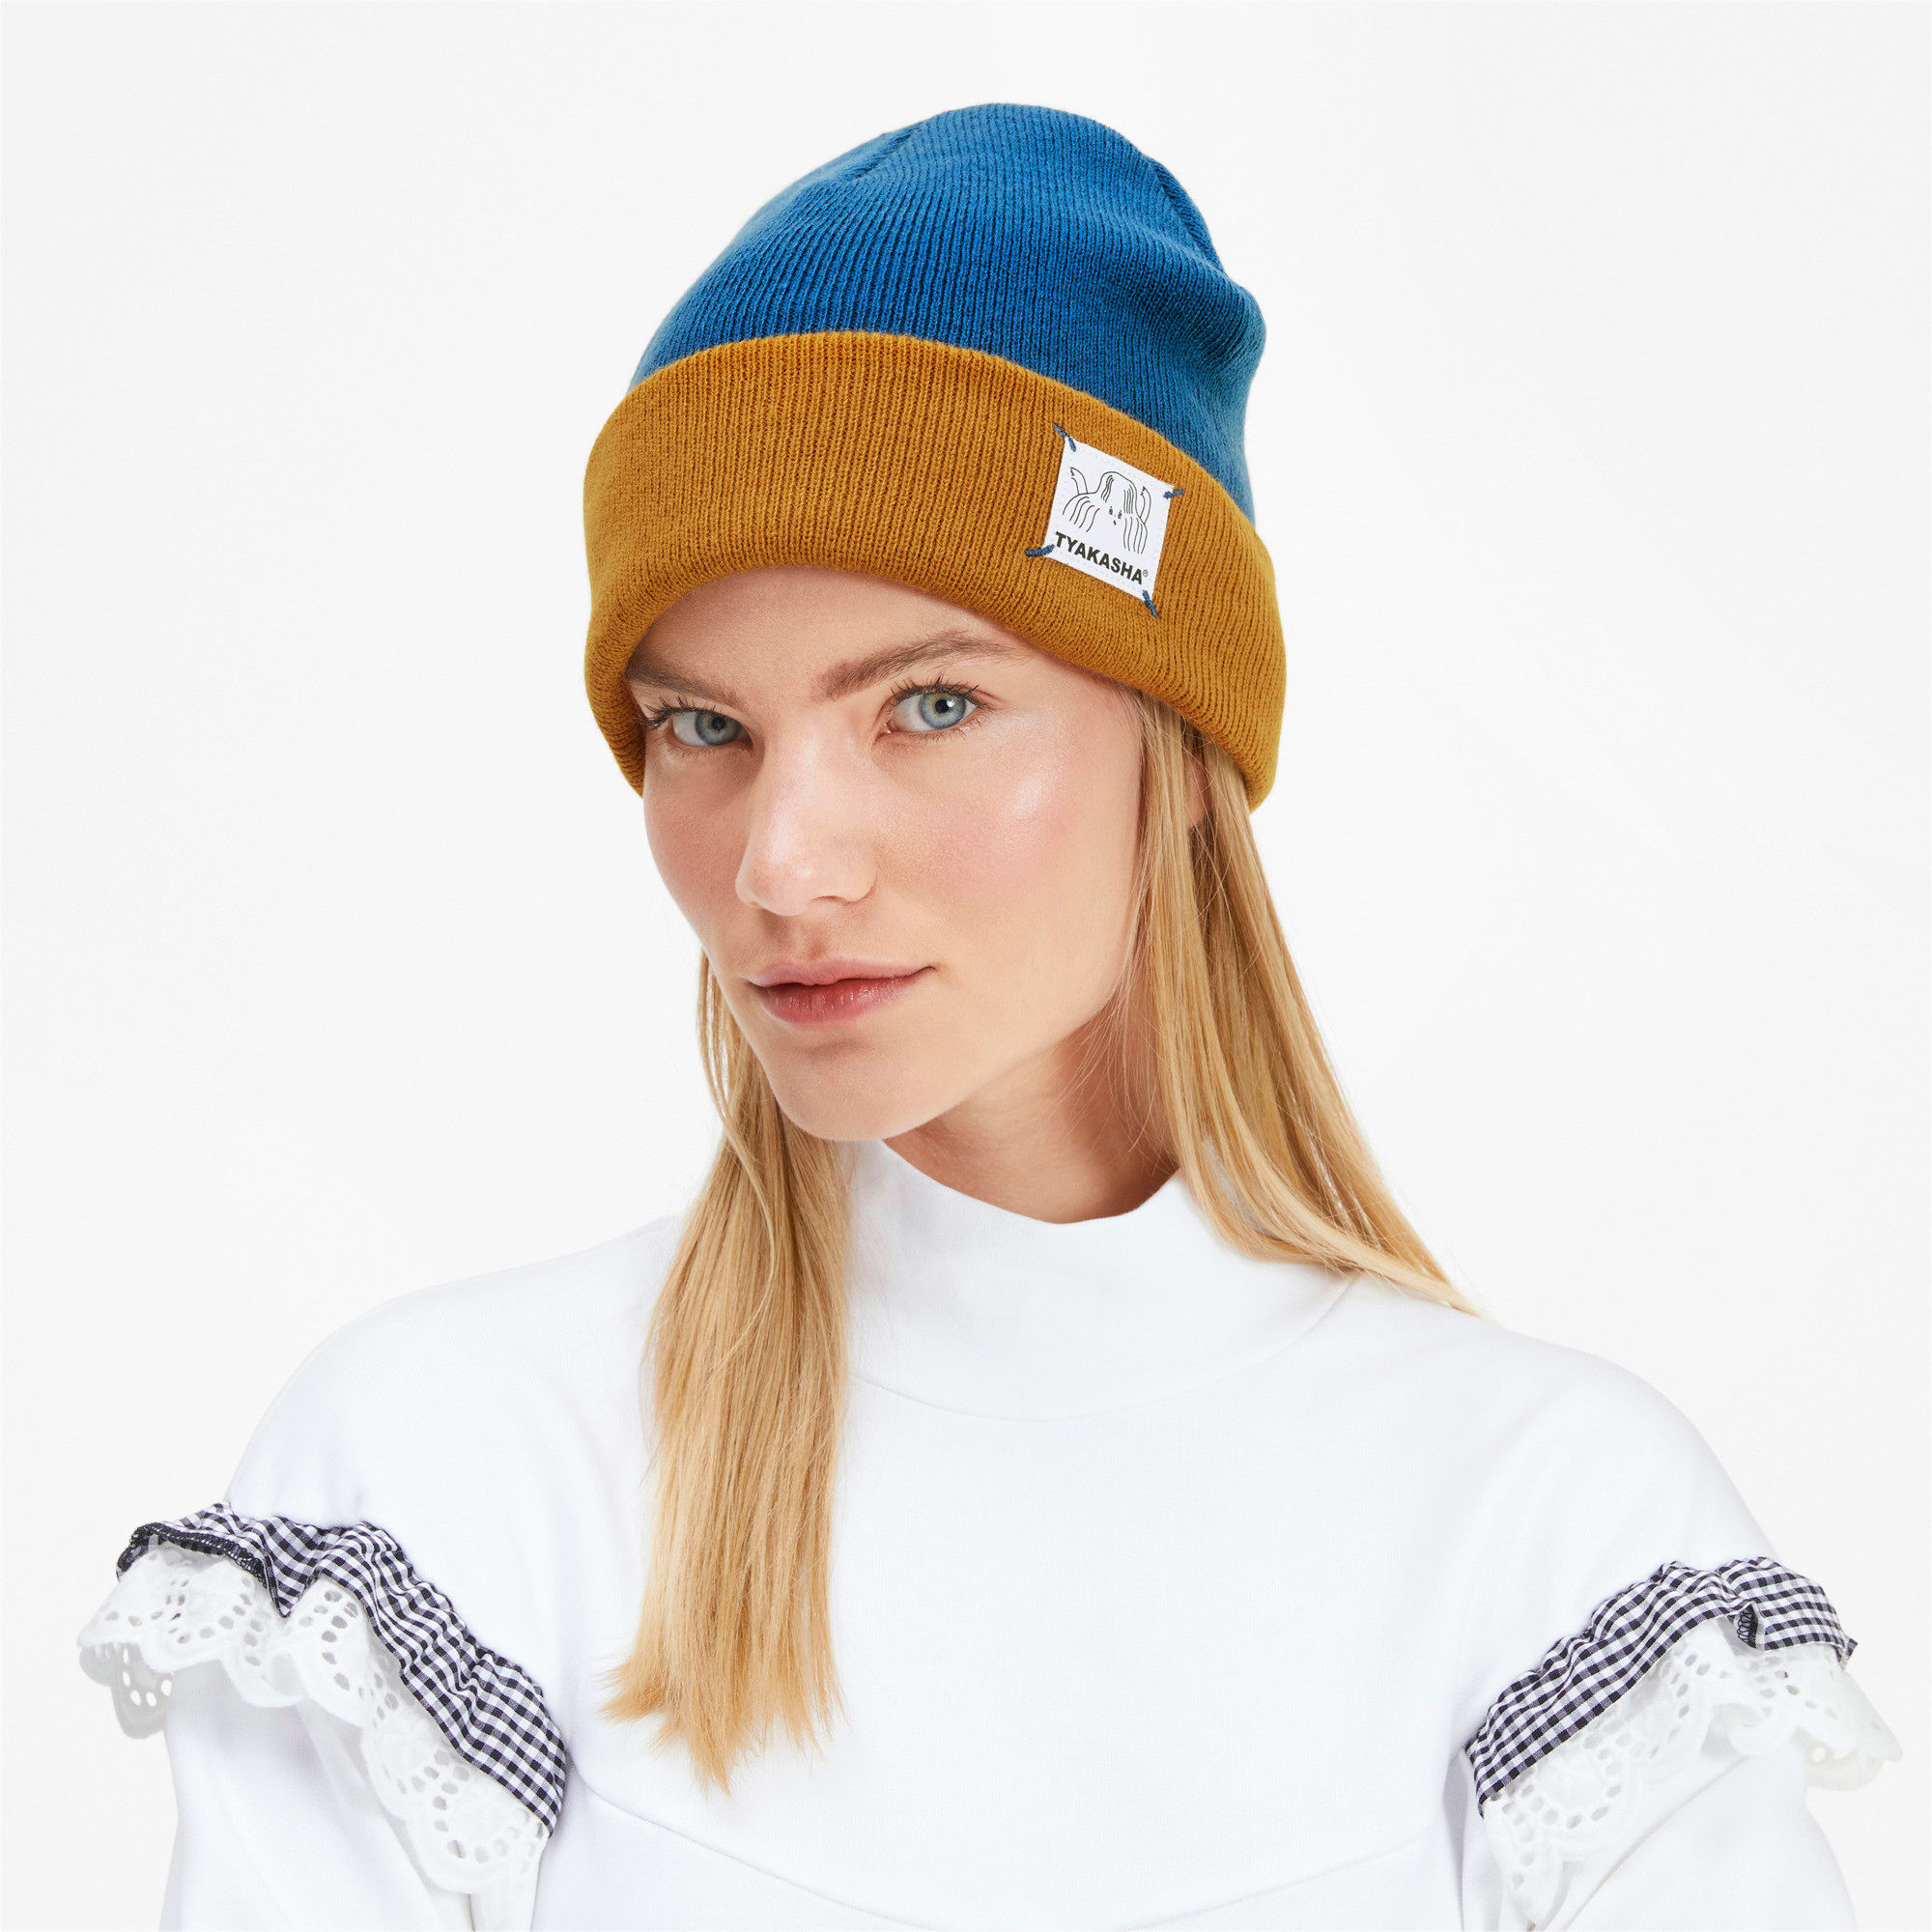 Thumbnail 3 of PUMA x TYAKASHA Beanie, Galaxy Blue-Buckthorn Brown, medium